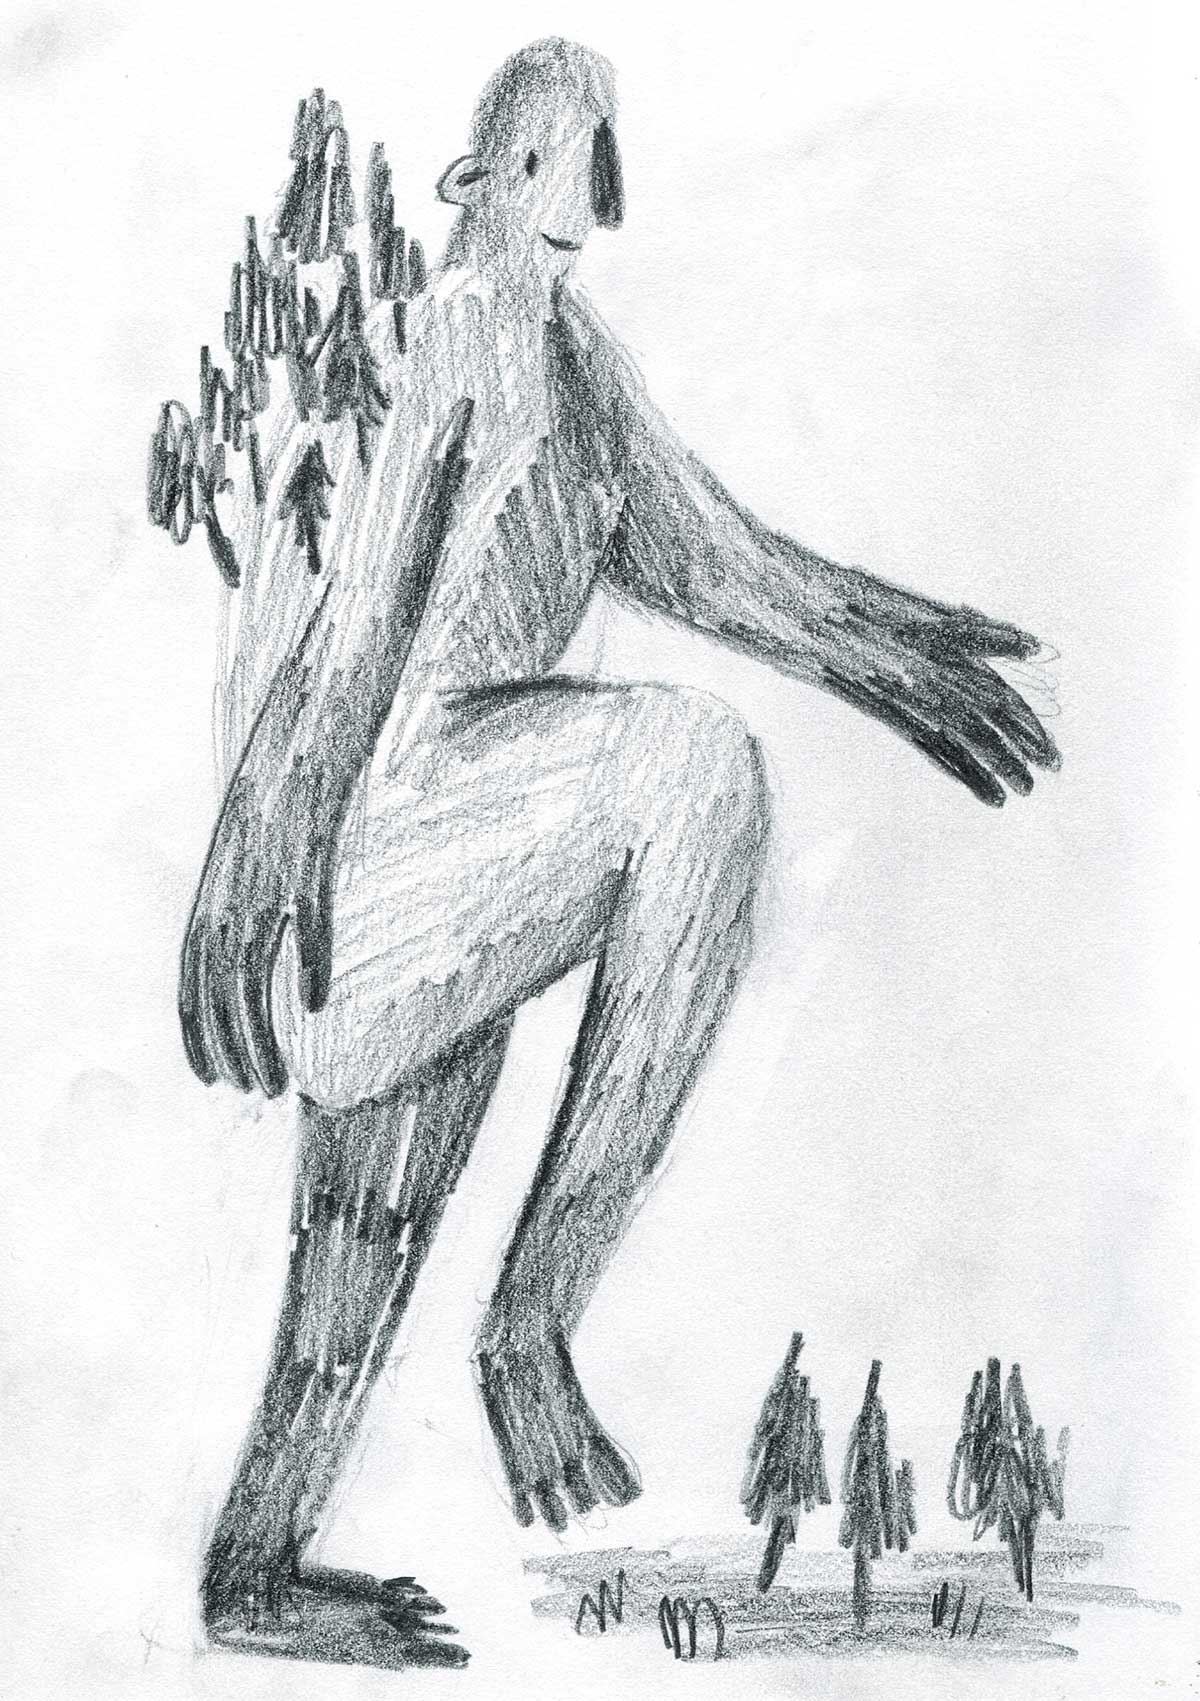 'Giants of the Land' Initial Character Sketch